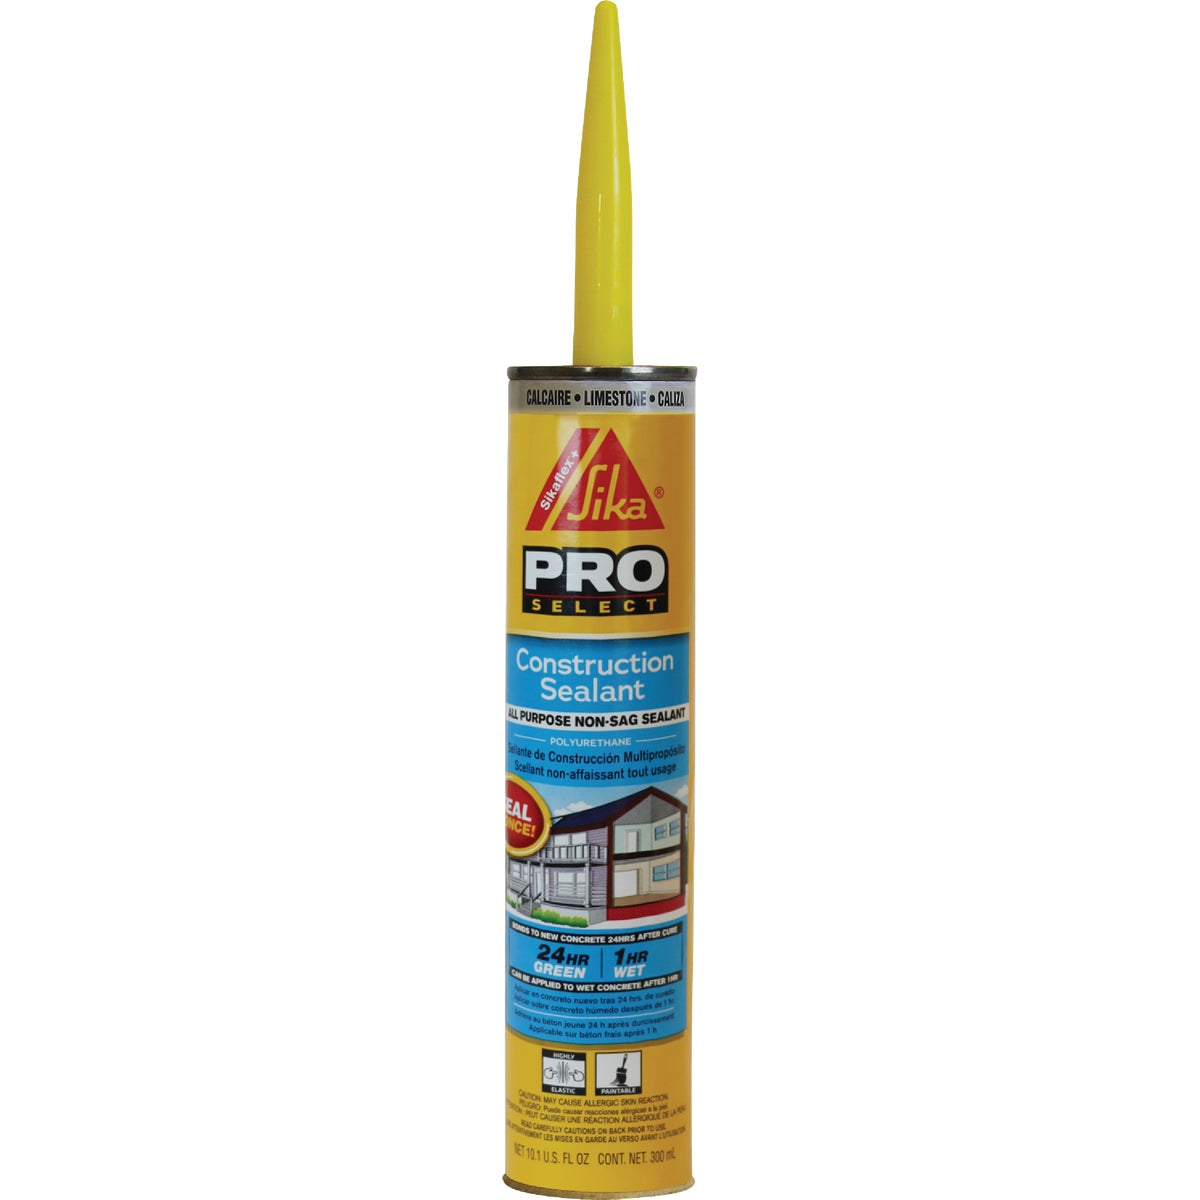 Sika Corp. 10 LMS SFLX CONS SEALANT 90959